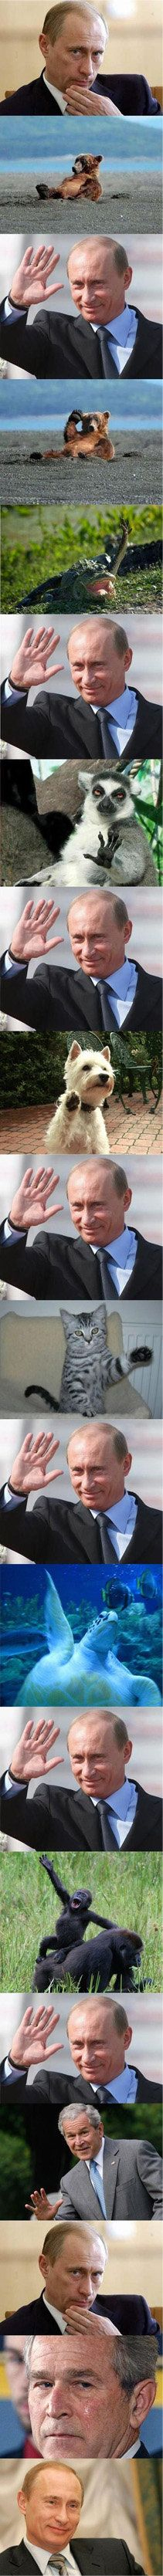 Funny pictures about Friendly Putin. Oh, and cool pics about Friendly Putin. Also, Friendly Putin photos. Funny Photos, Funny Images, Best Funny Pictures, Really Funny, The Funny, Putin Funny, Wladimir Putin, Meanwhile In Russia, Epic Fail Pictures